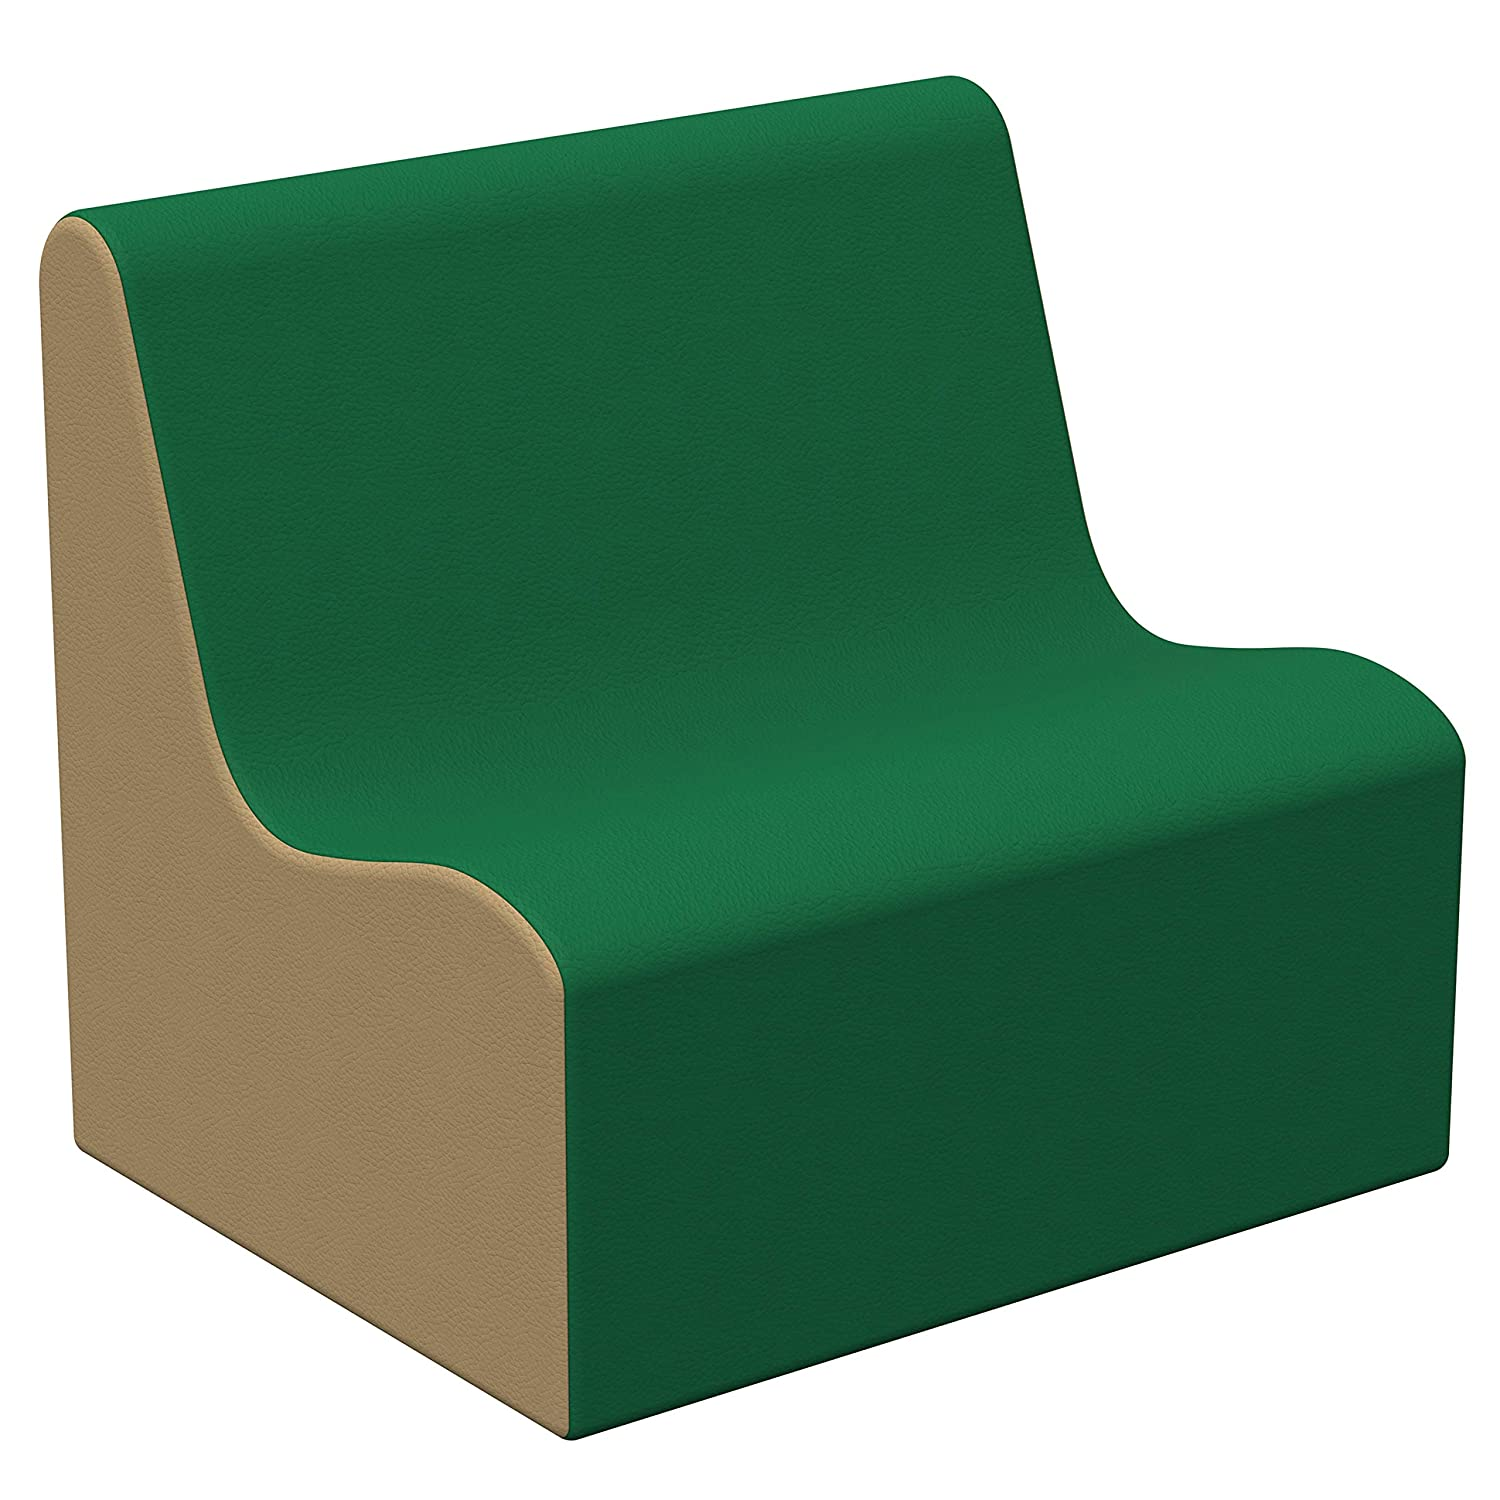 FDP SoftScape Wave Preschool Sofa Seating, Play Soft Supportive Foam Furniture for Kids for Bedrooms, Playrooms, Classrooms - Green/Sand